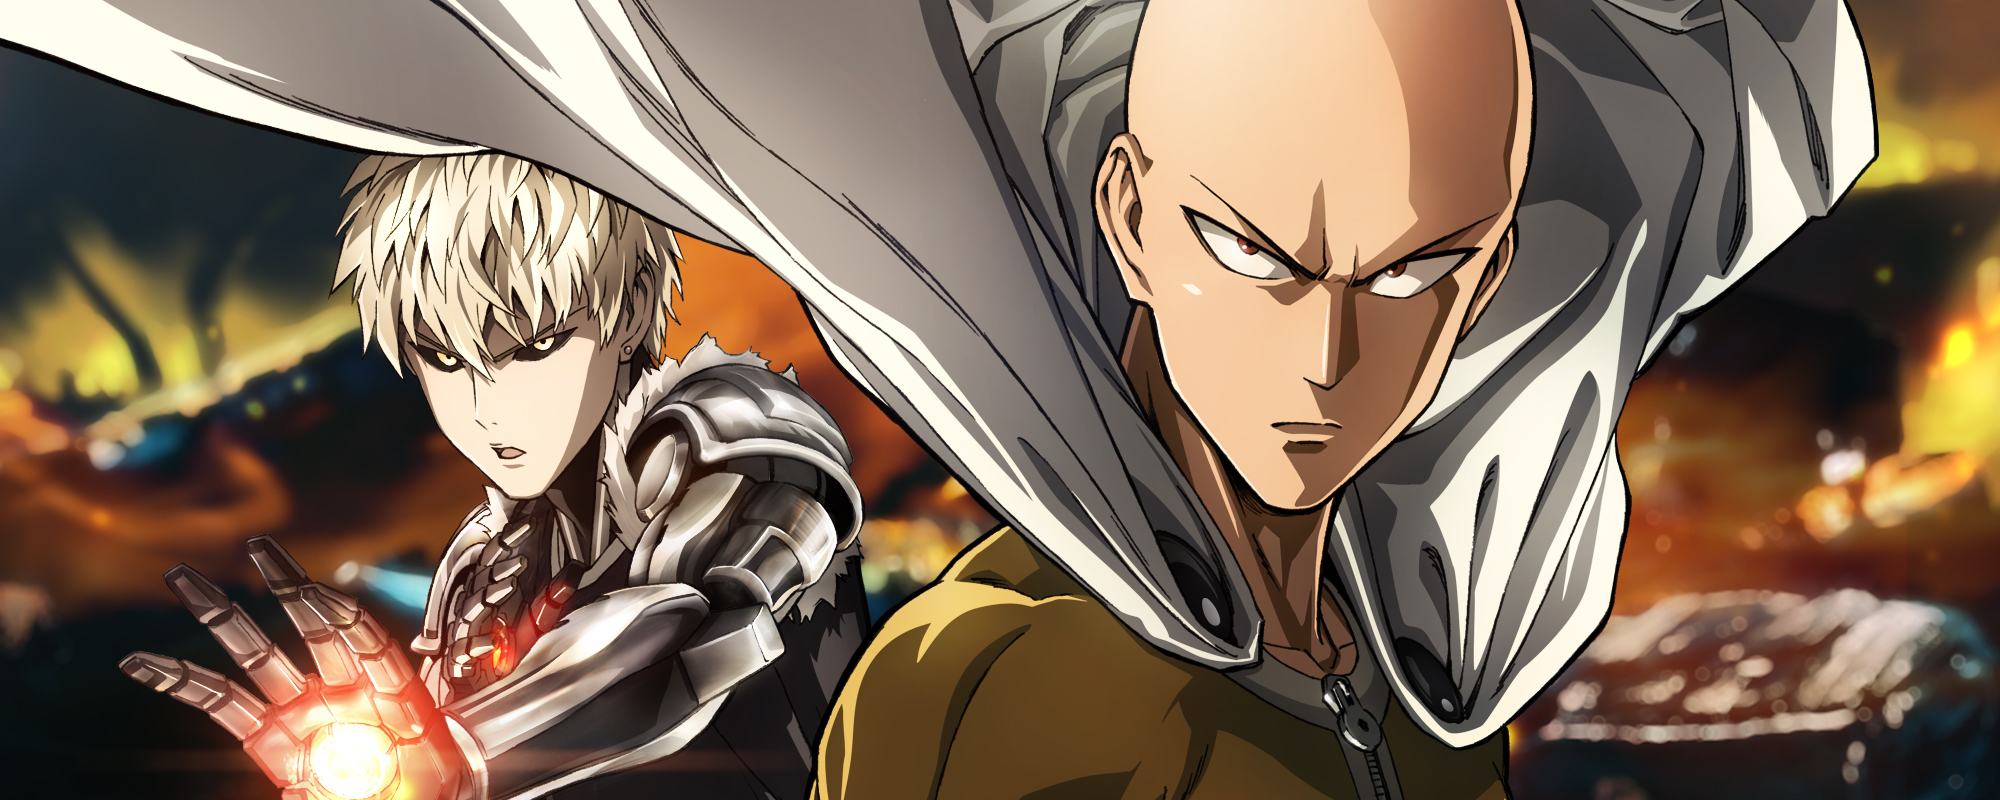 VIZ Media, LLC. ONE-PUNCH MAN © 2012 by ONE, Yusuke Murata/SHUEISHA Inc. | Saitama and Genos from One-Punch Man